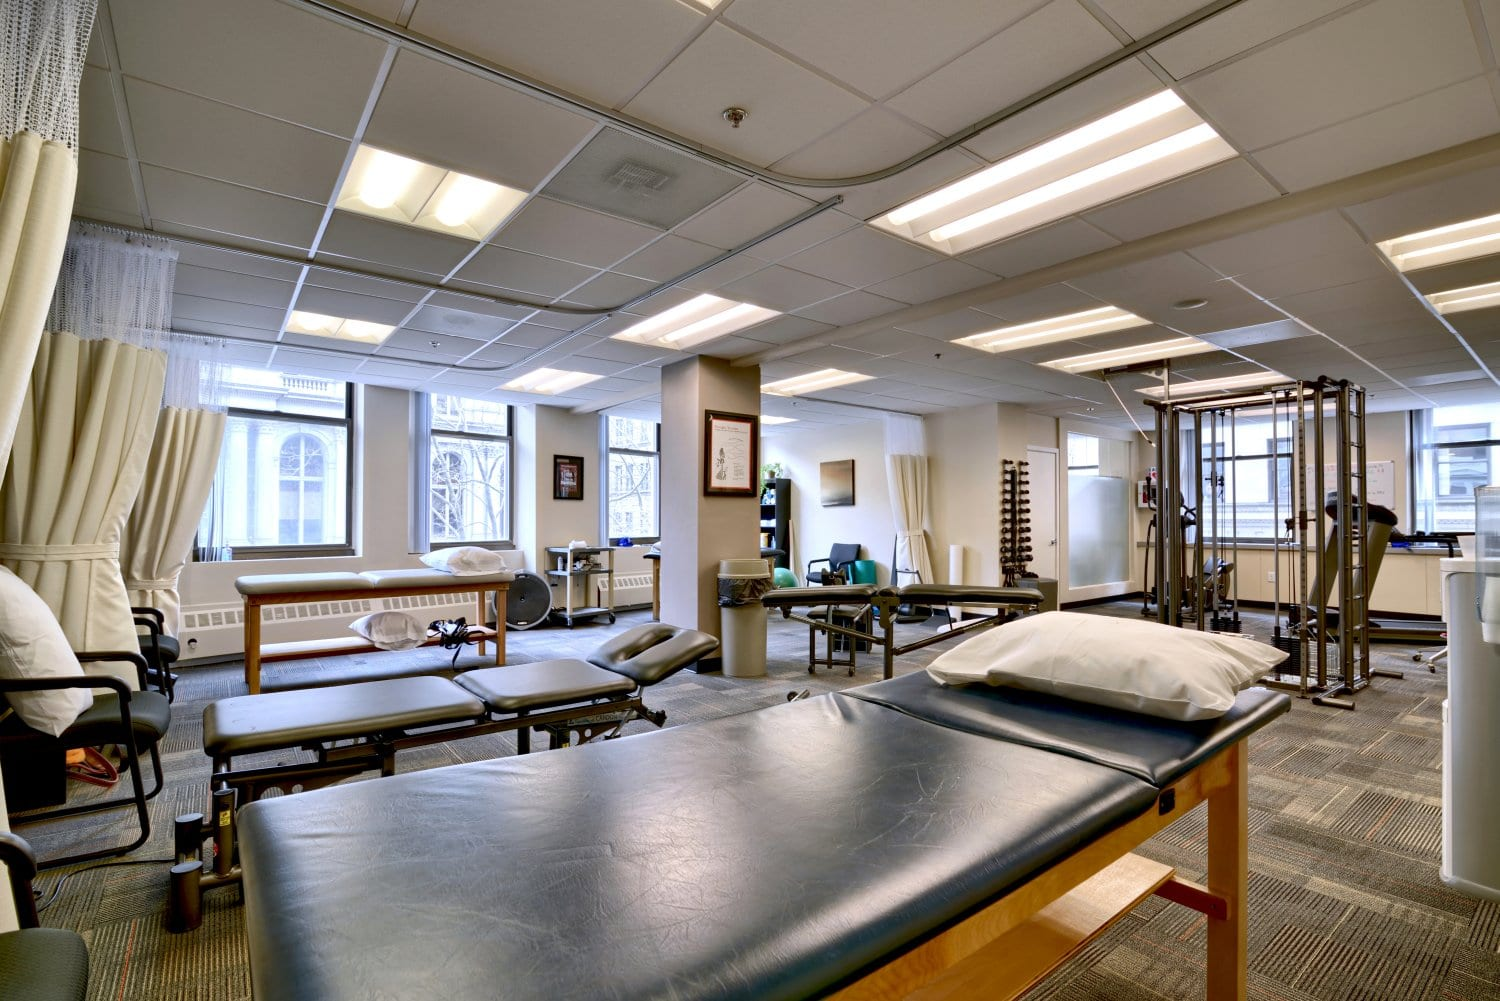 This is an image of the interior of our clean physical therapy clinic in Boston, Massachusetts. This image shows clean equipment and stretch beds.